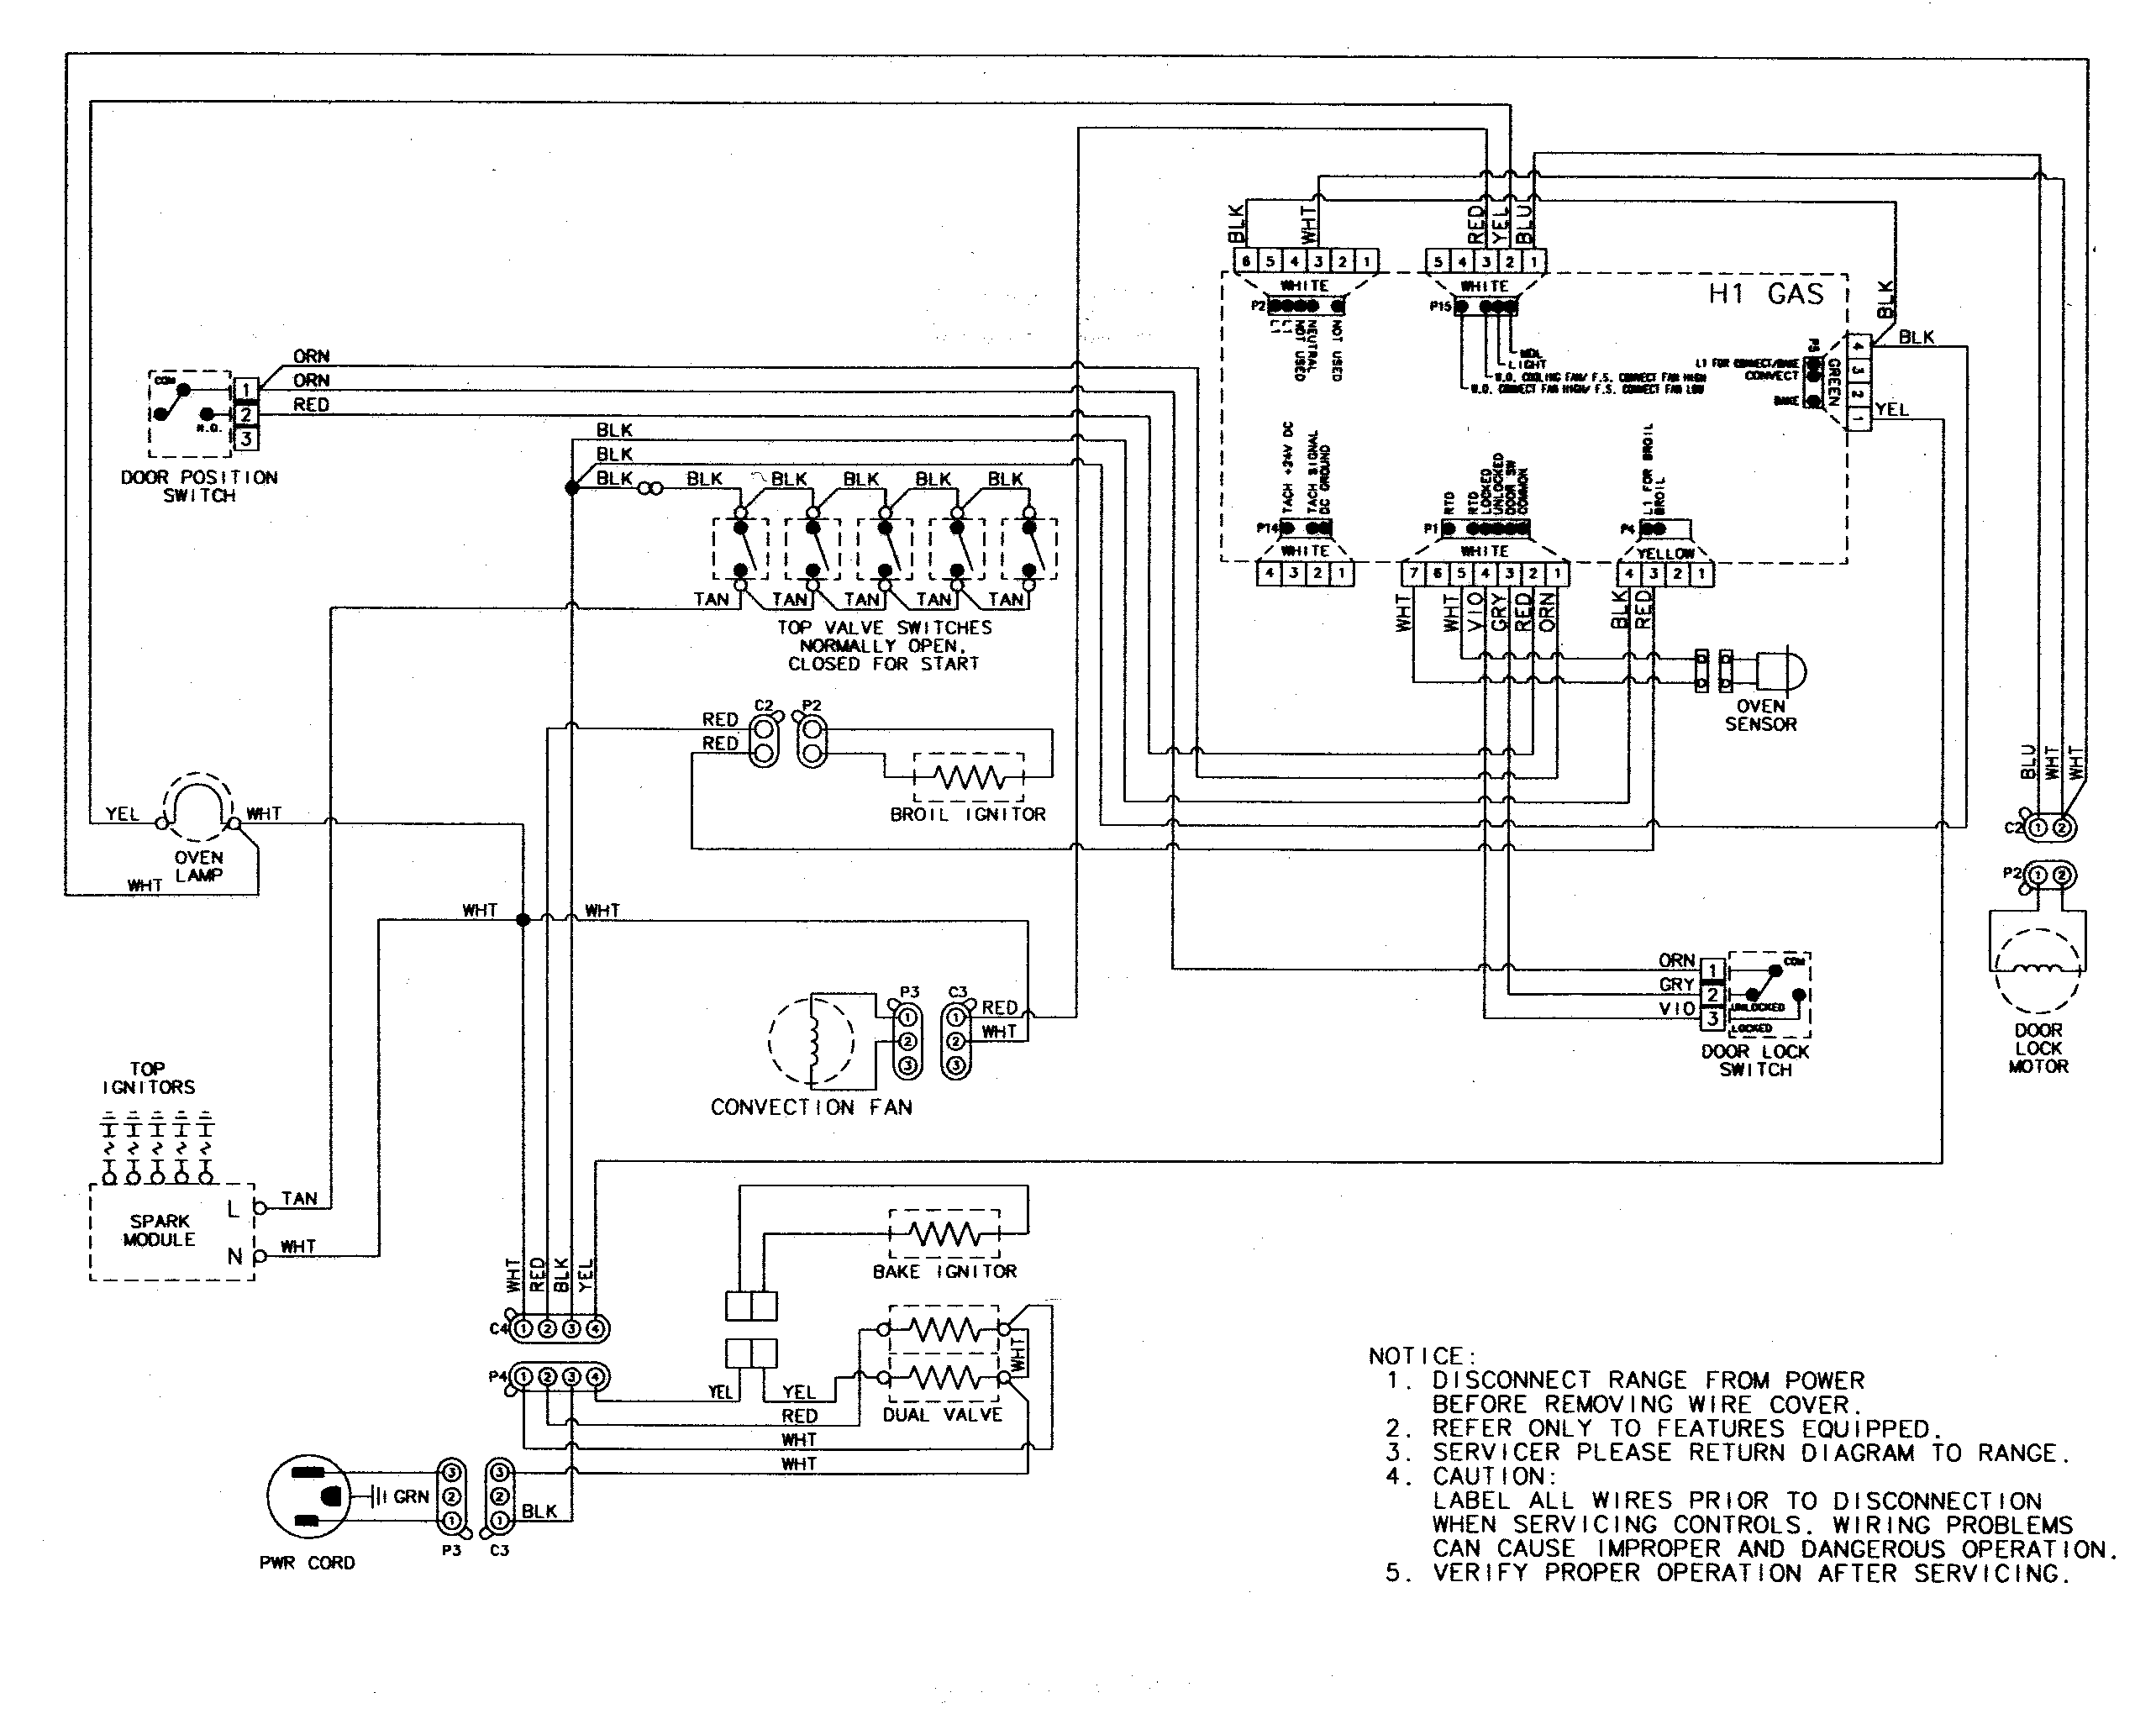 wiring diagram for ge dryer timer with Index on Index furthermore Index additionally Part Of Whirlpool Dishwasher Wiring Harness together with Ge Washing Machine Parts Diagram likewise Ge Model Wiring Diagram.